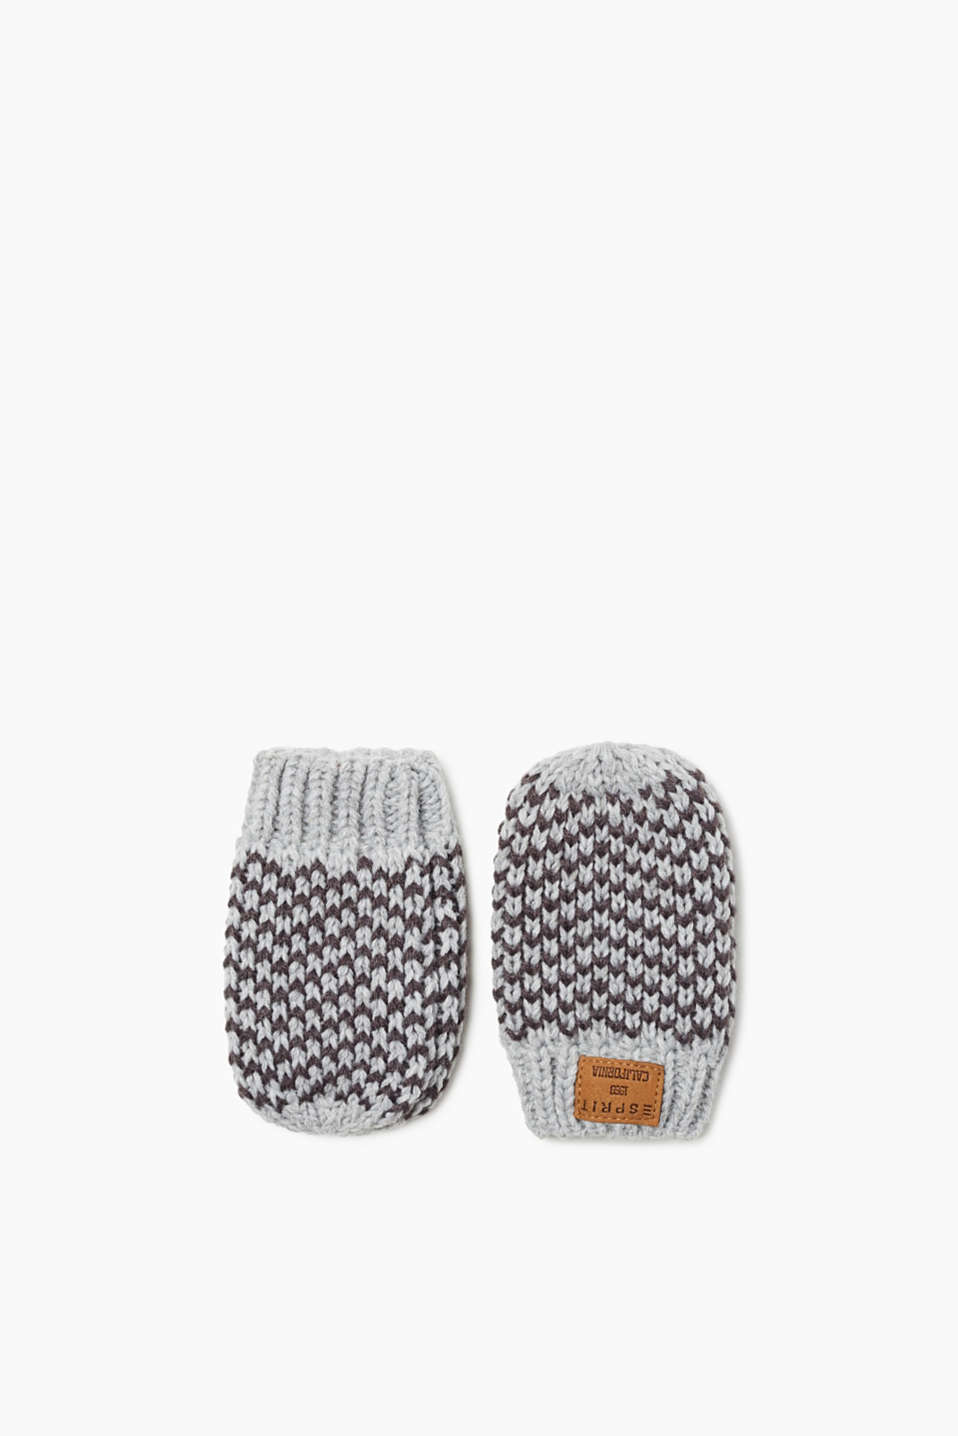 Esprit - Patterned knitted mittens